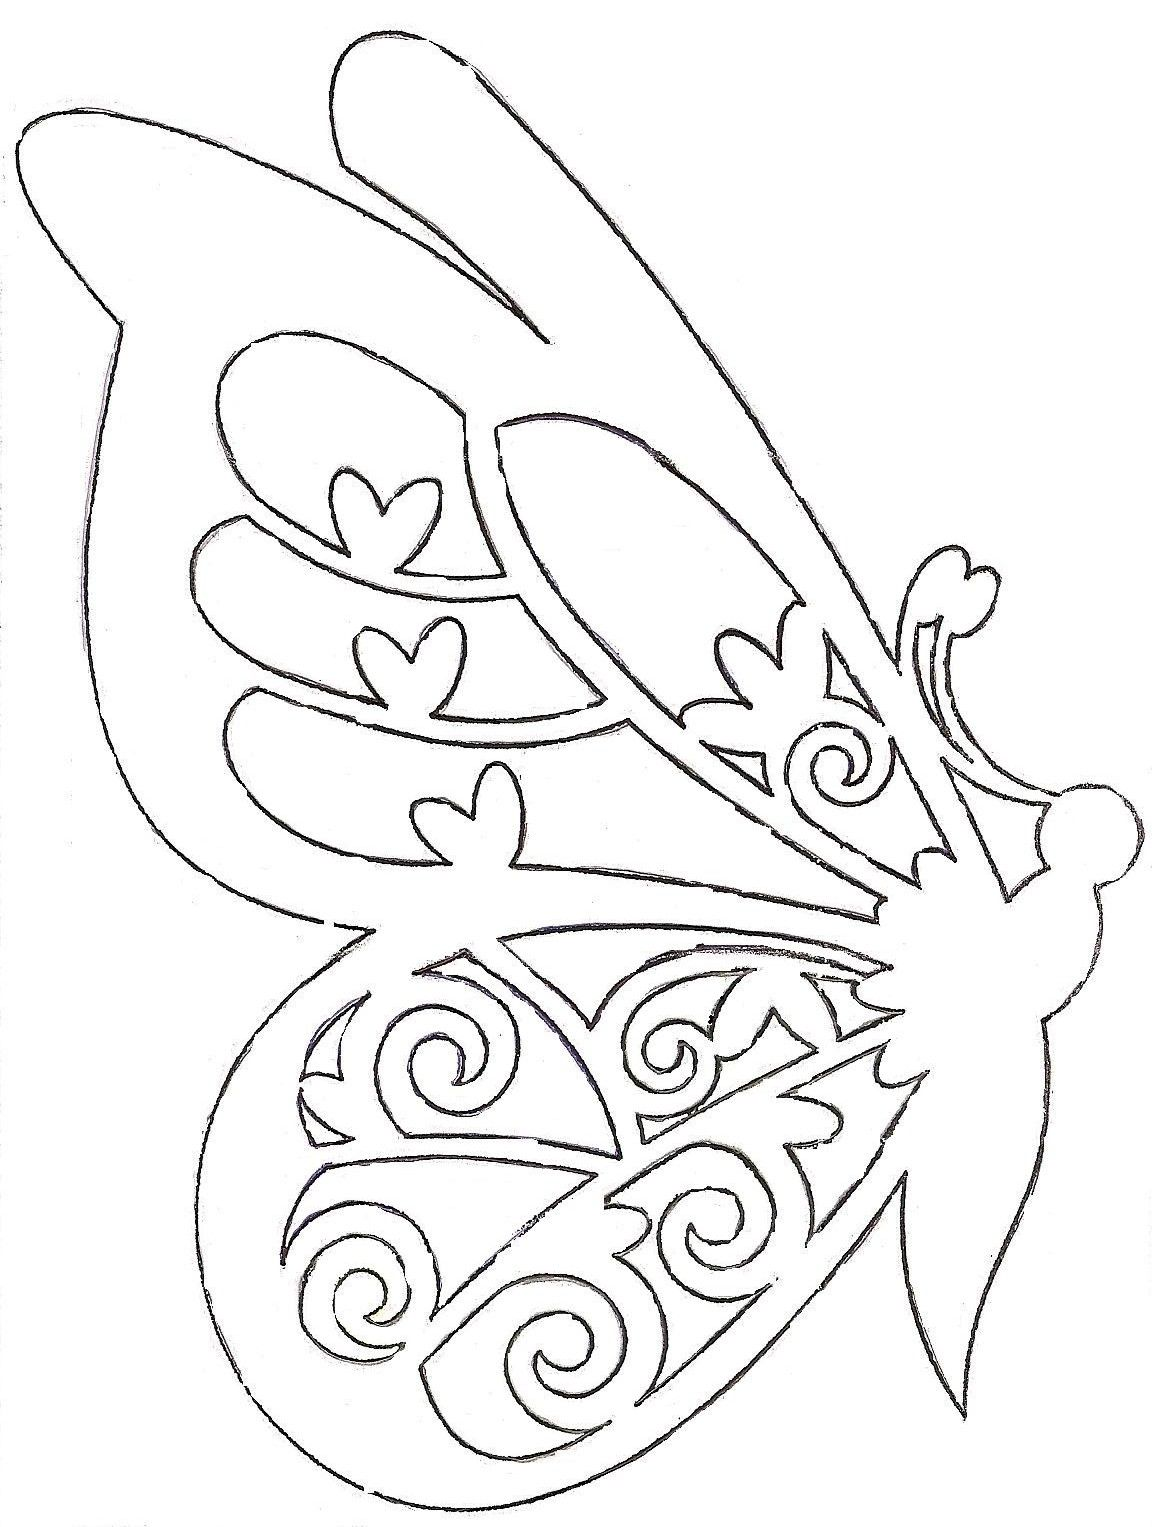 db703 coloring pages - photo#21